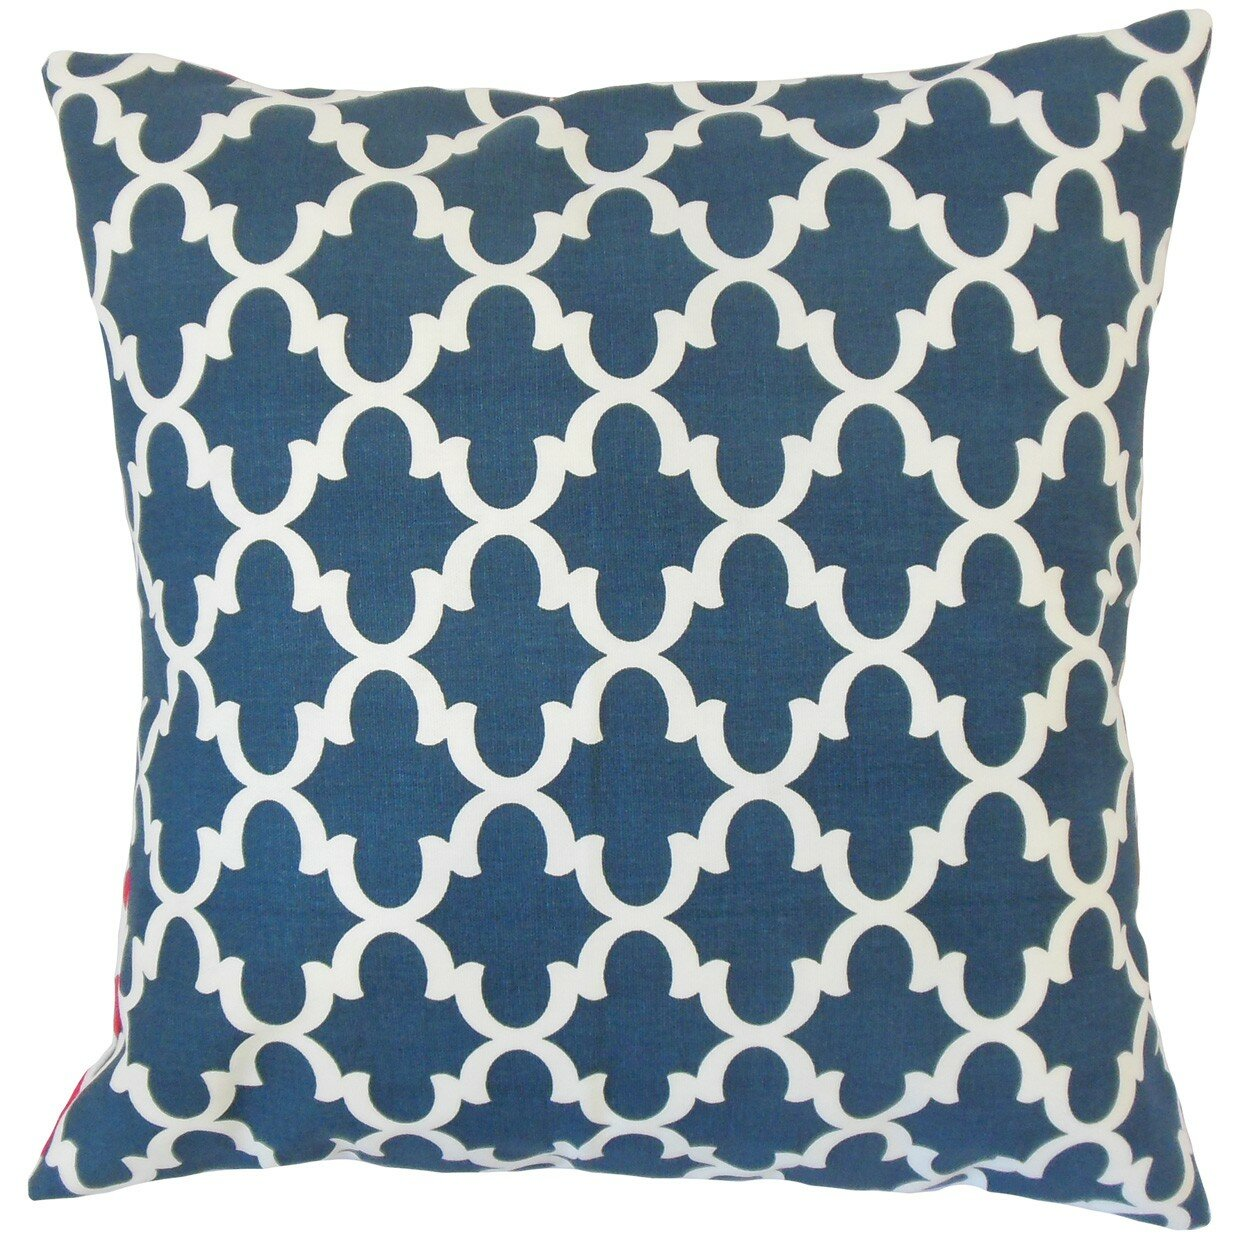 Throw Pillow Liners : The Pillow Collection Benoite Geometric Throw Pillow & Reviews Wayfair Supply